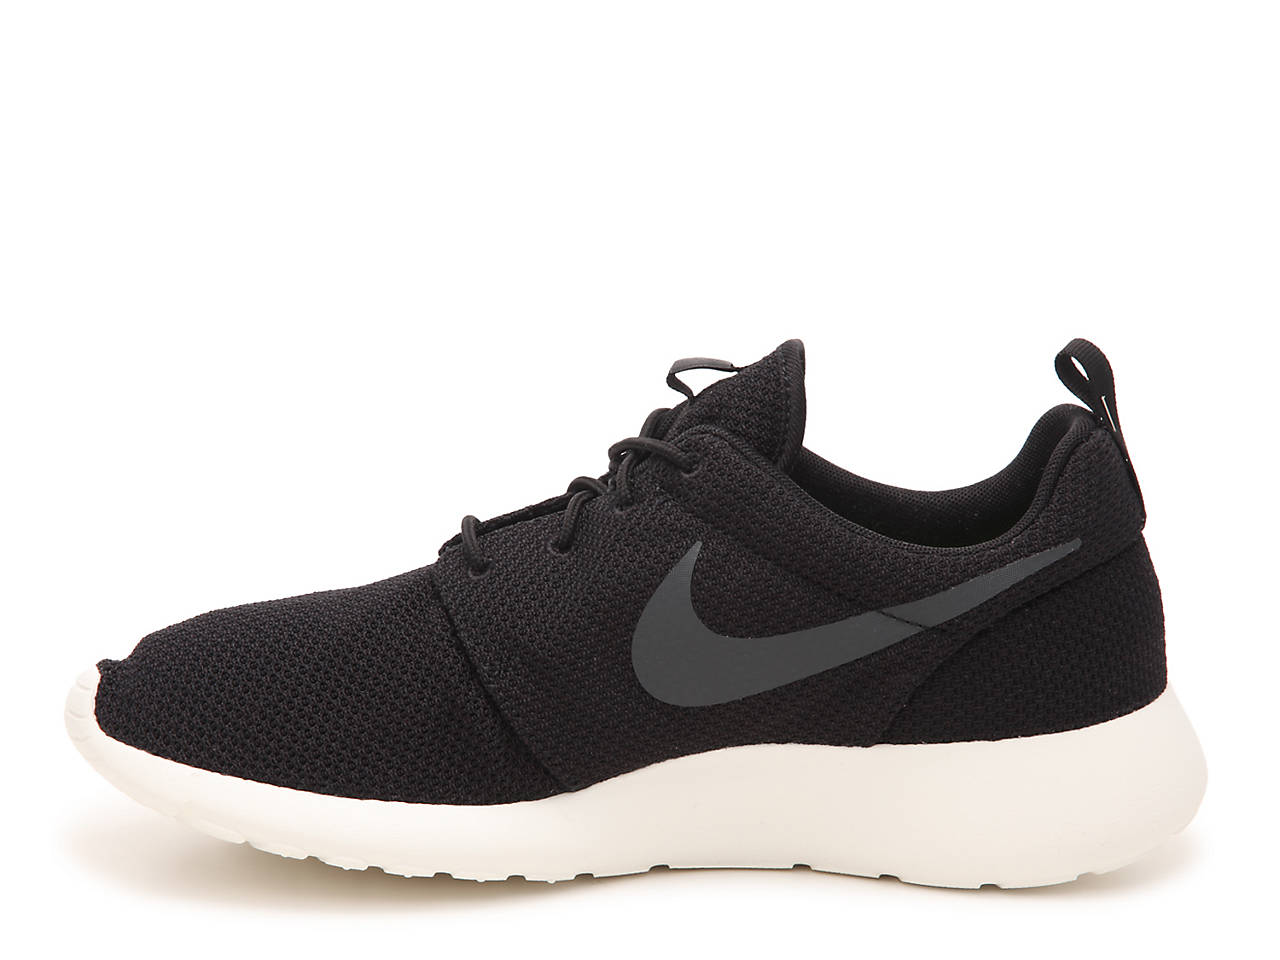 competitive price 90a33 dd9b7 Roshe One Sneaker - Men s. next